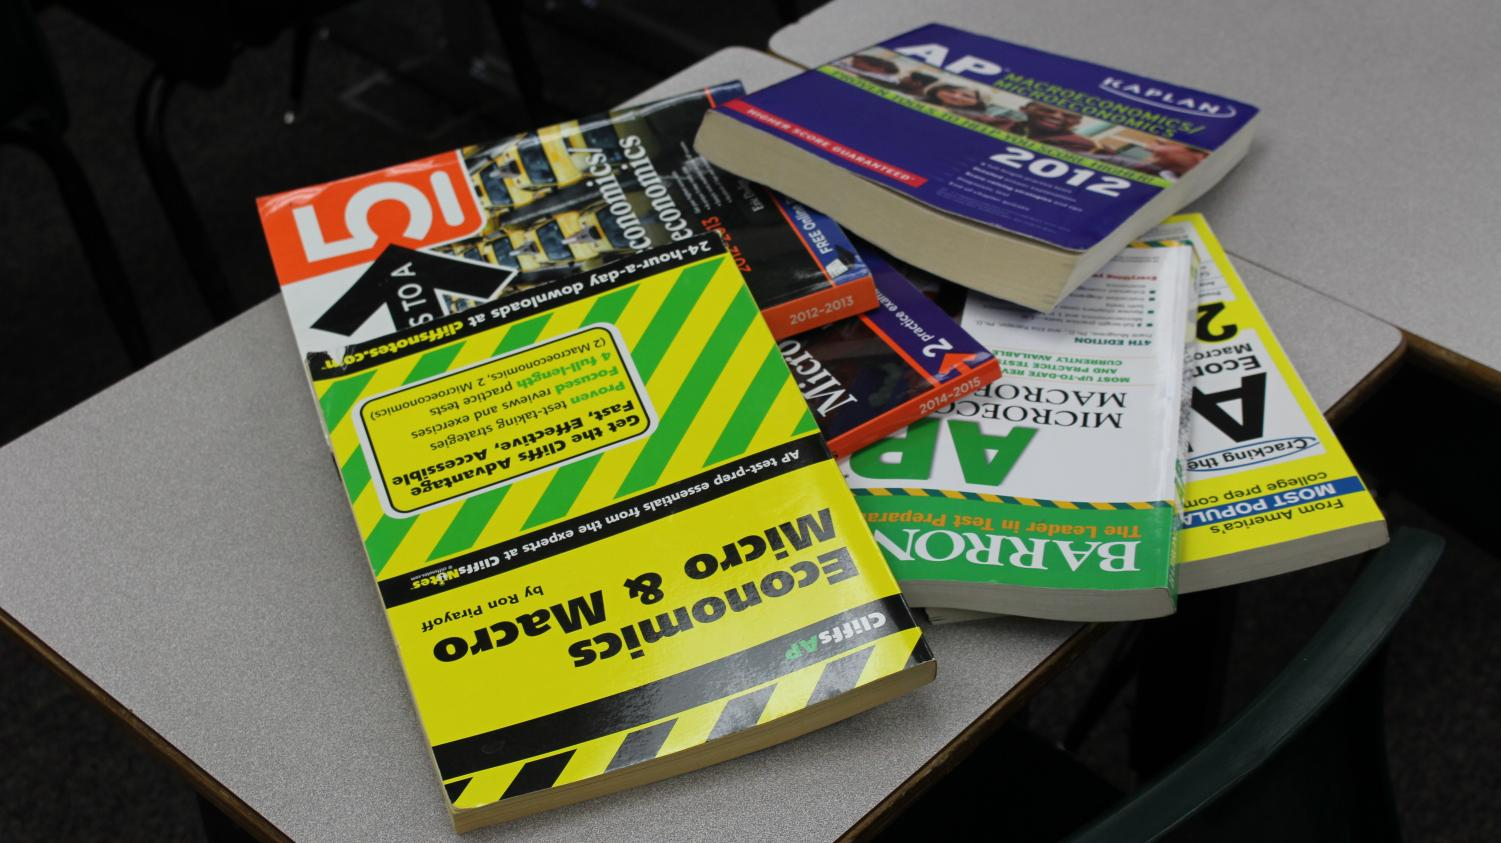 There are a plethora of preparation books that students have used to aid them in achieving high scores on these AP exams.